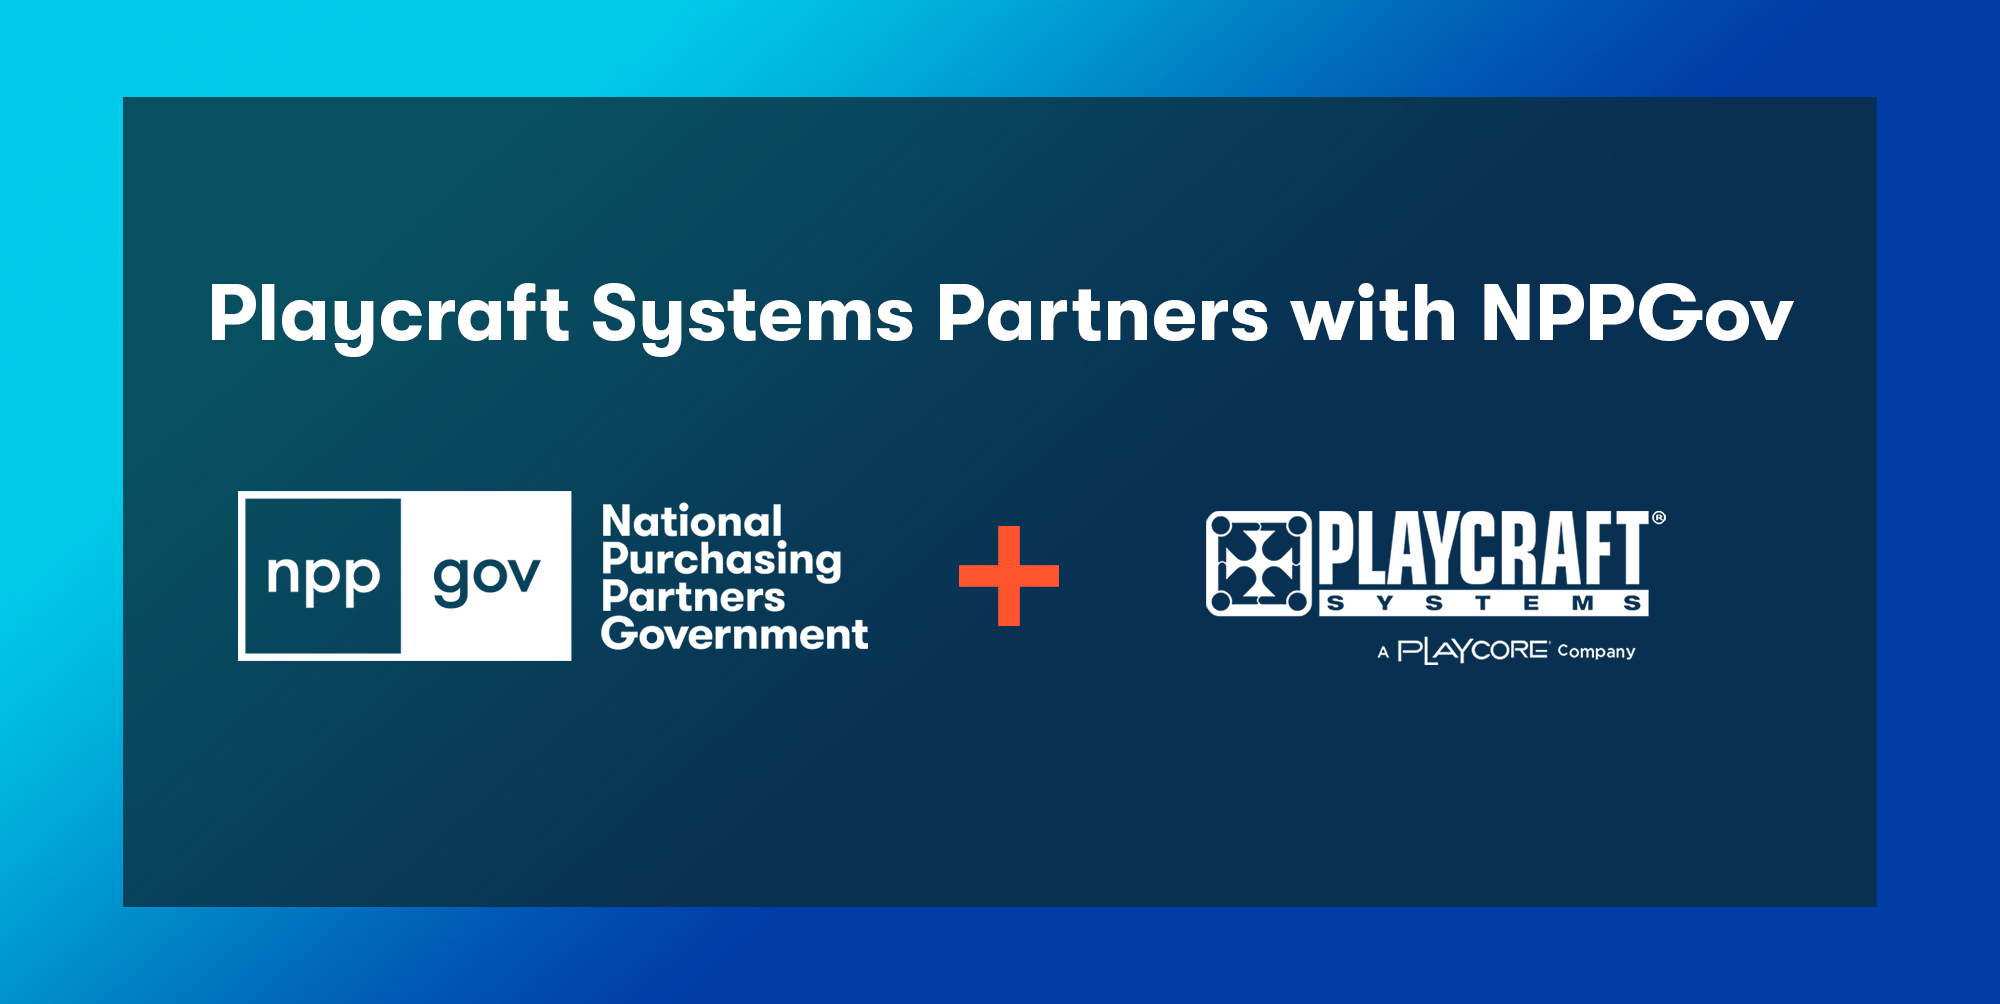 Playcraft Partners with NPPGov